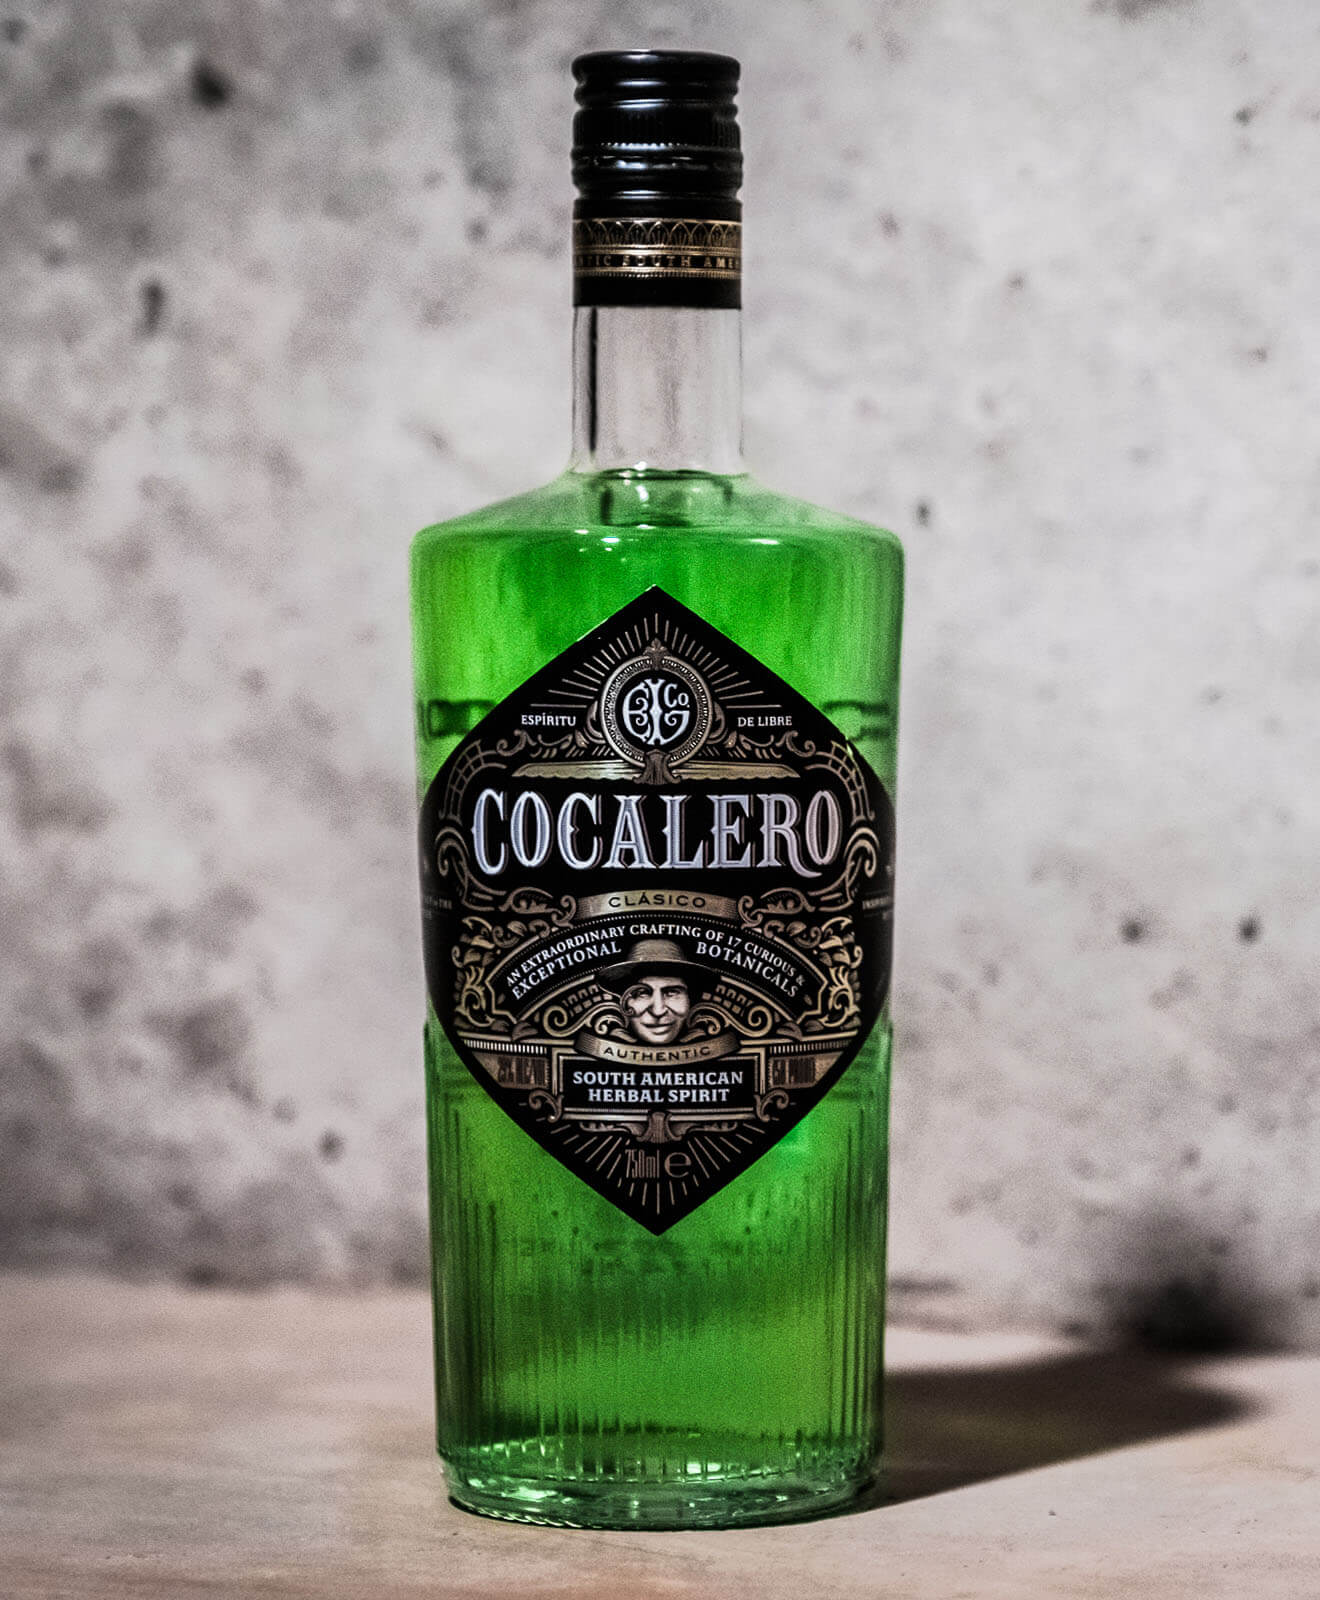 Cocalero Clásico, bottle on marble background